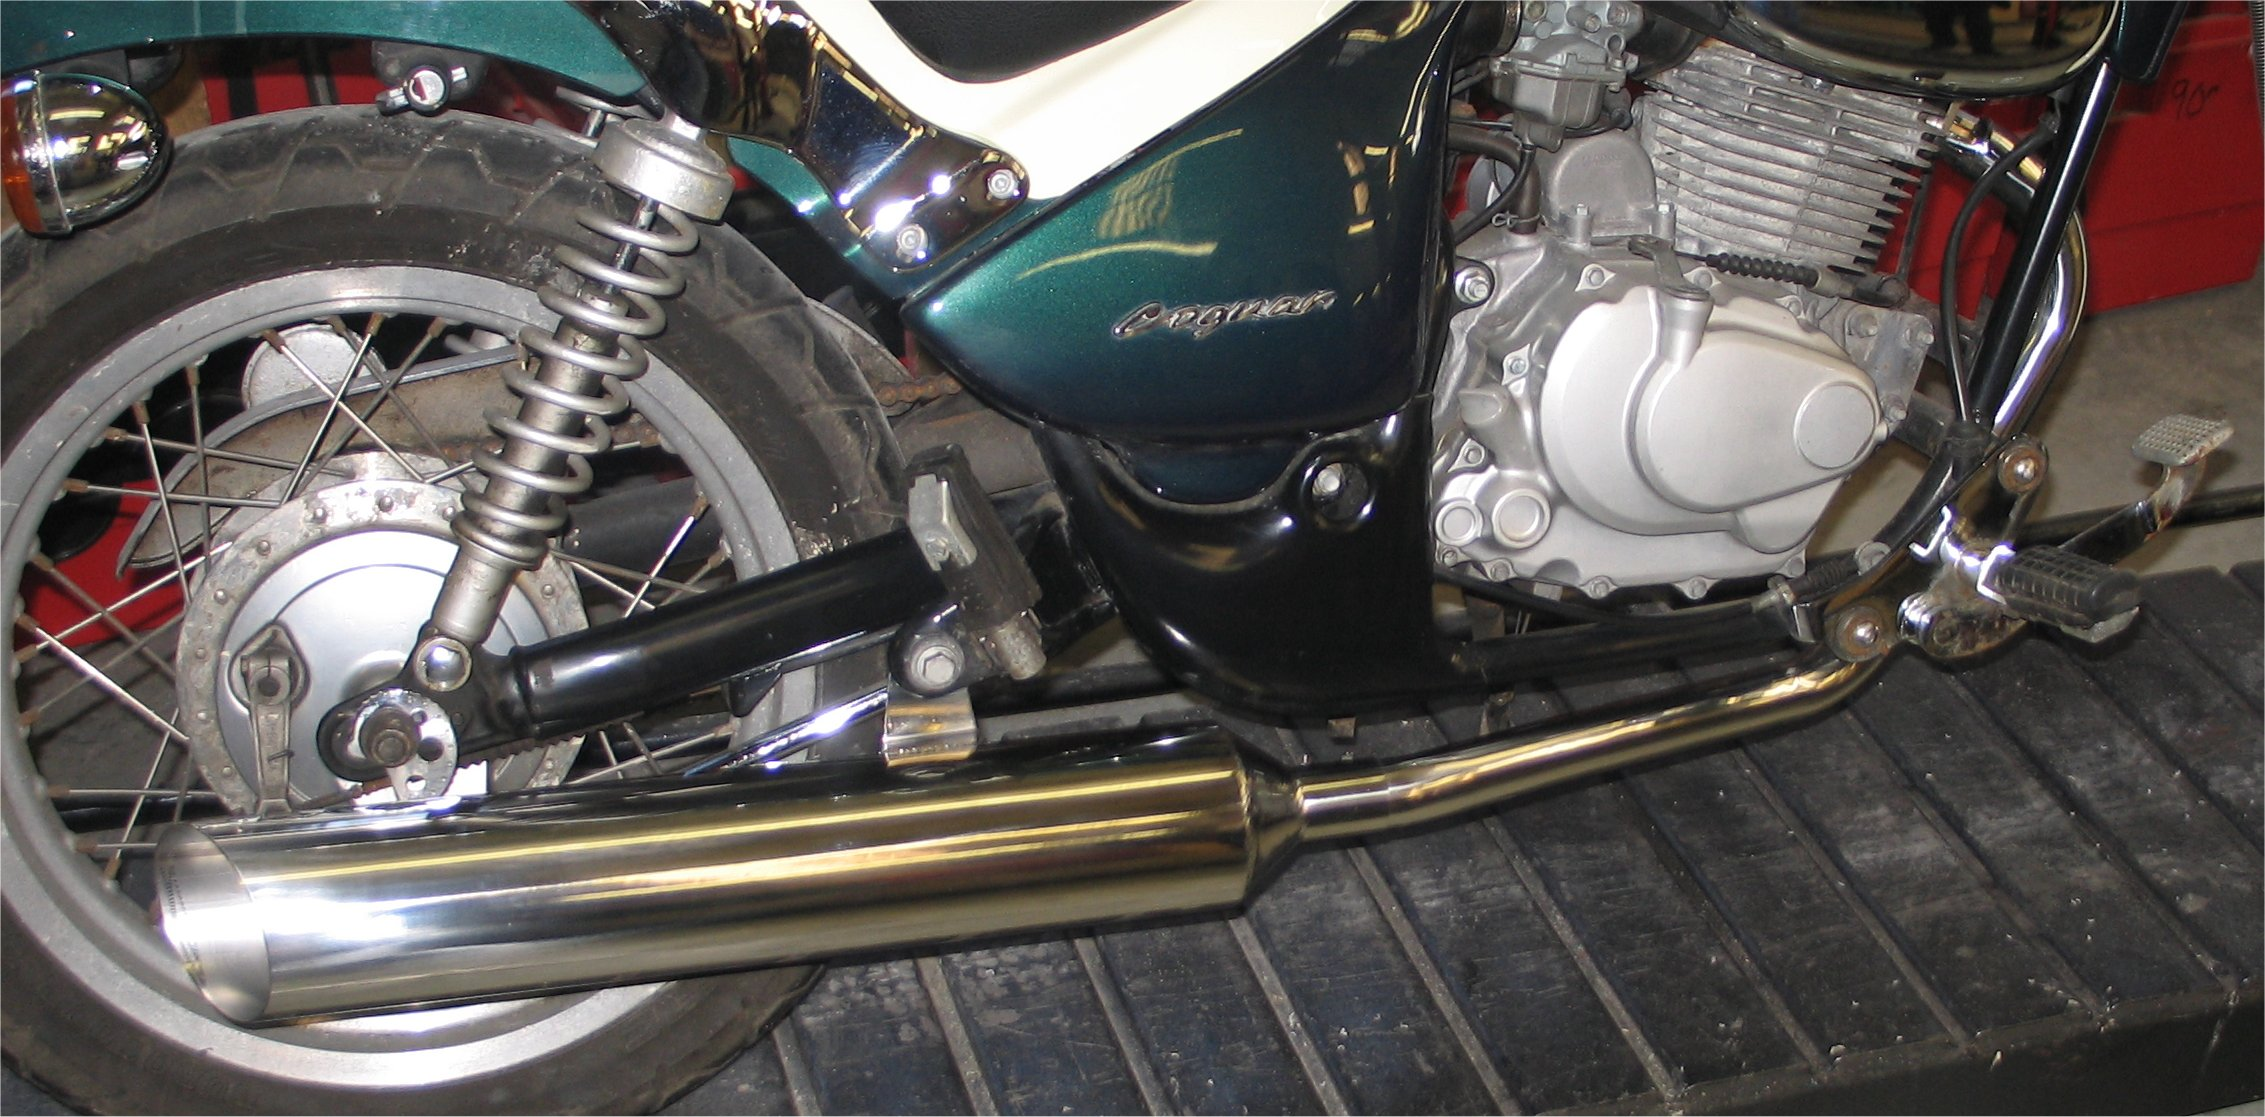 GILERA COOGAR PREDATOR SPORTS EXHAUST SYSTEM IN POLISHED STAINLESS STEEL